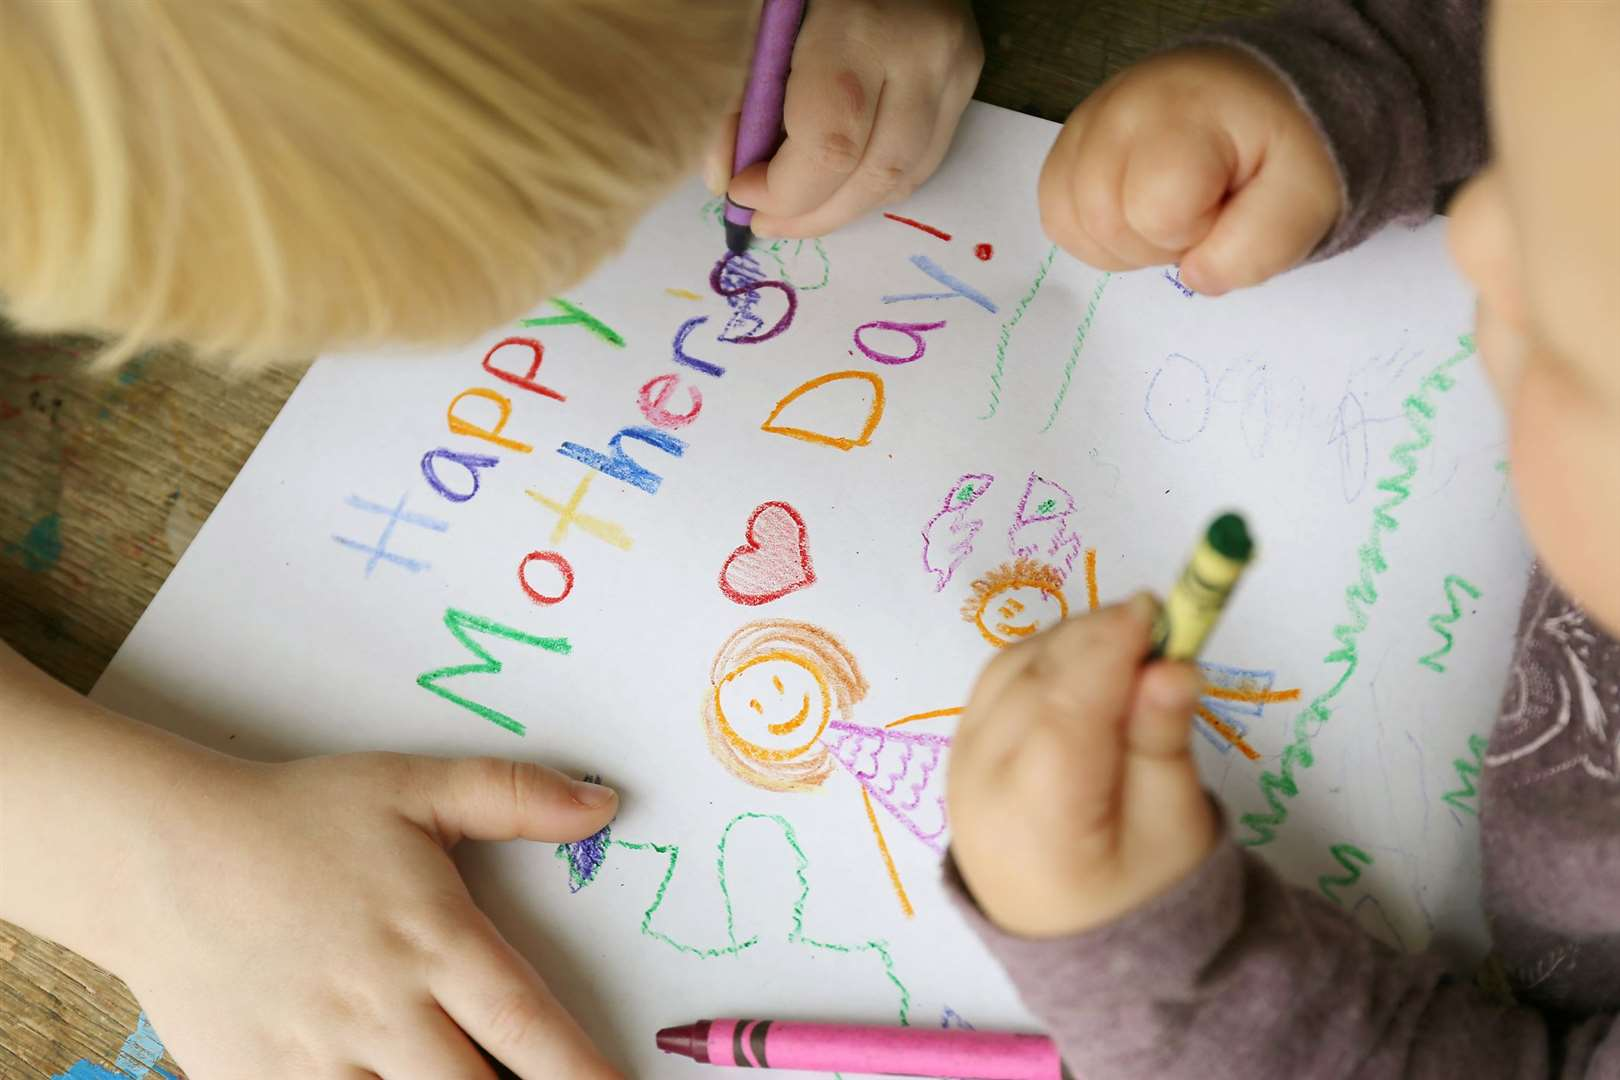 Did your child draw a Mother's Day picture?